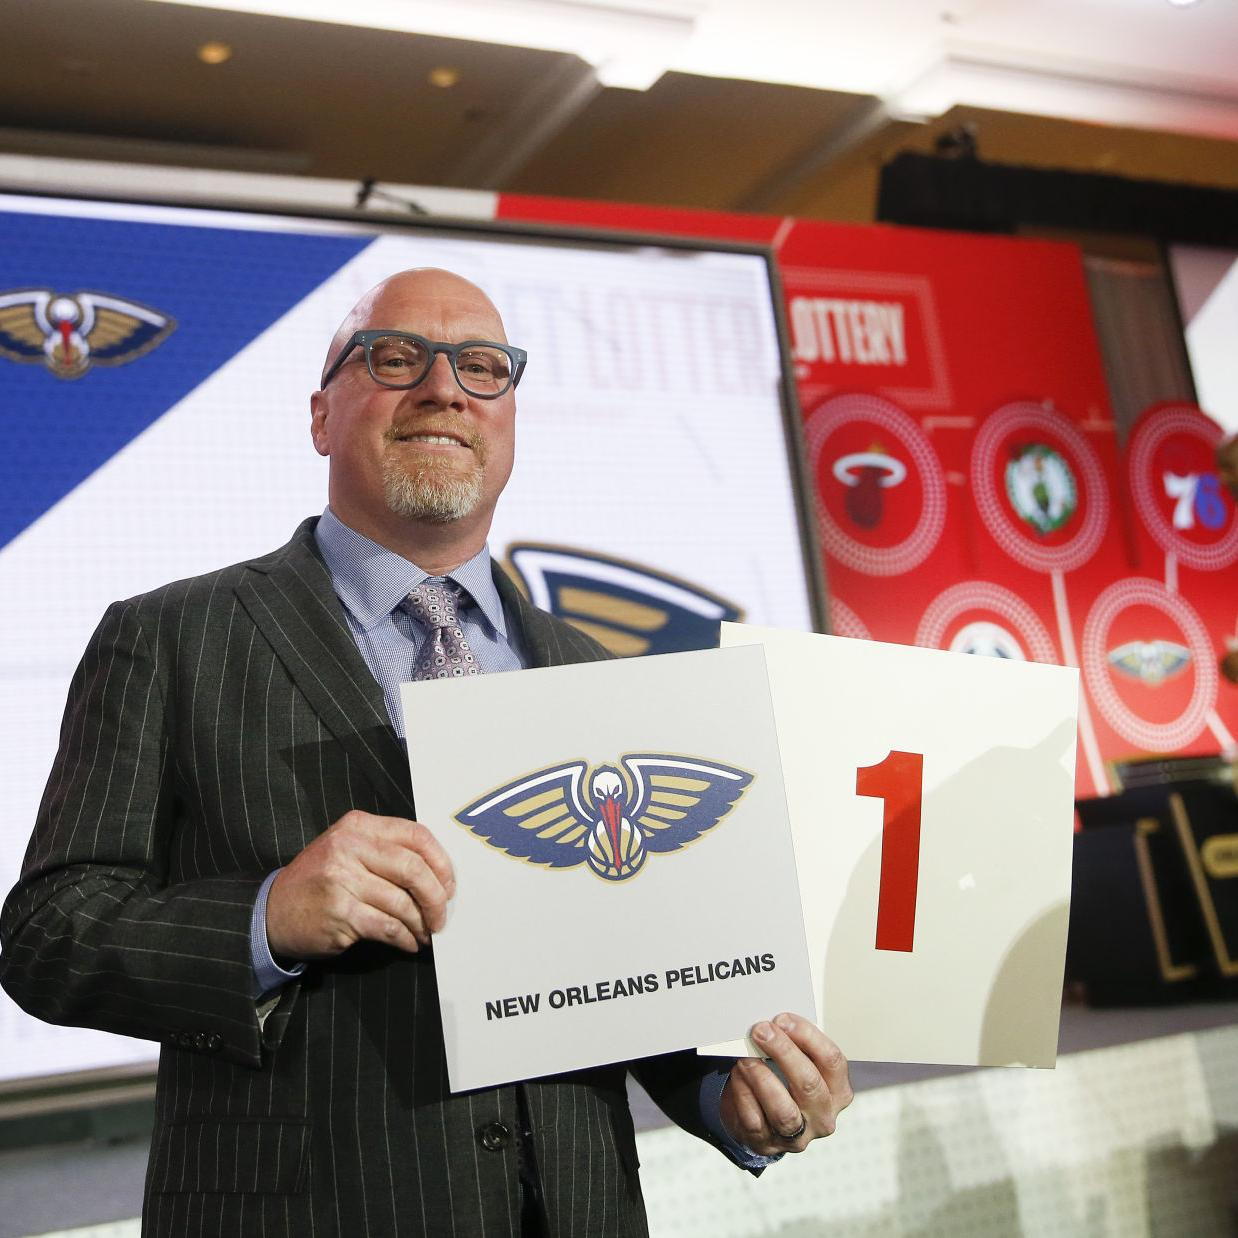 New Orleans Pelicans bring intrigue to NBA Draft after first